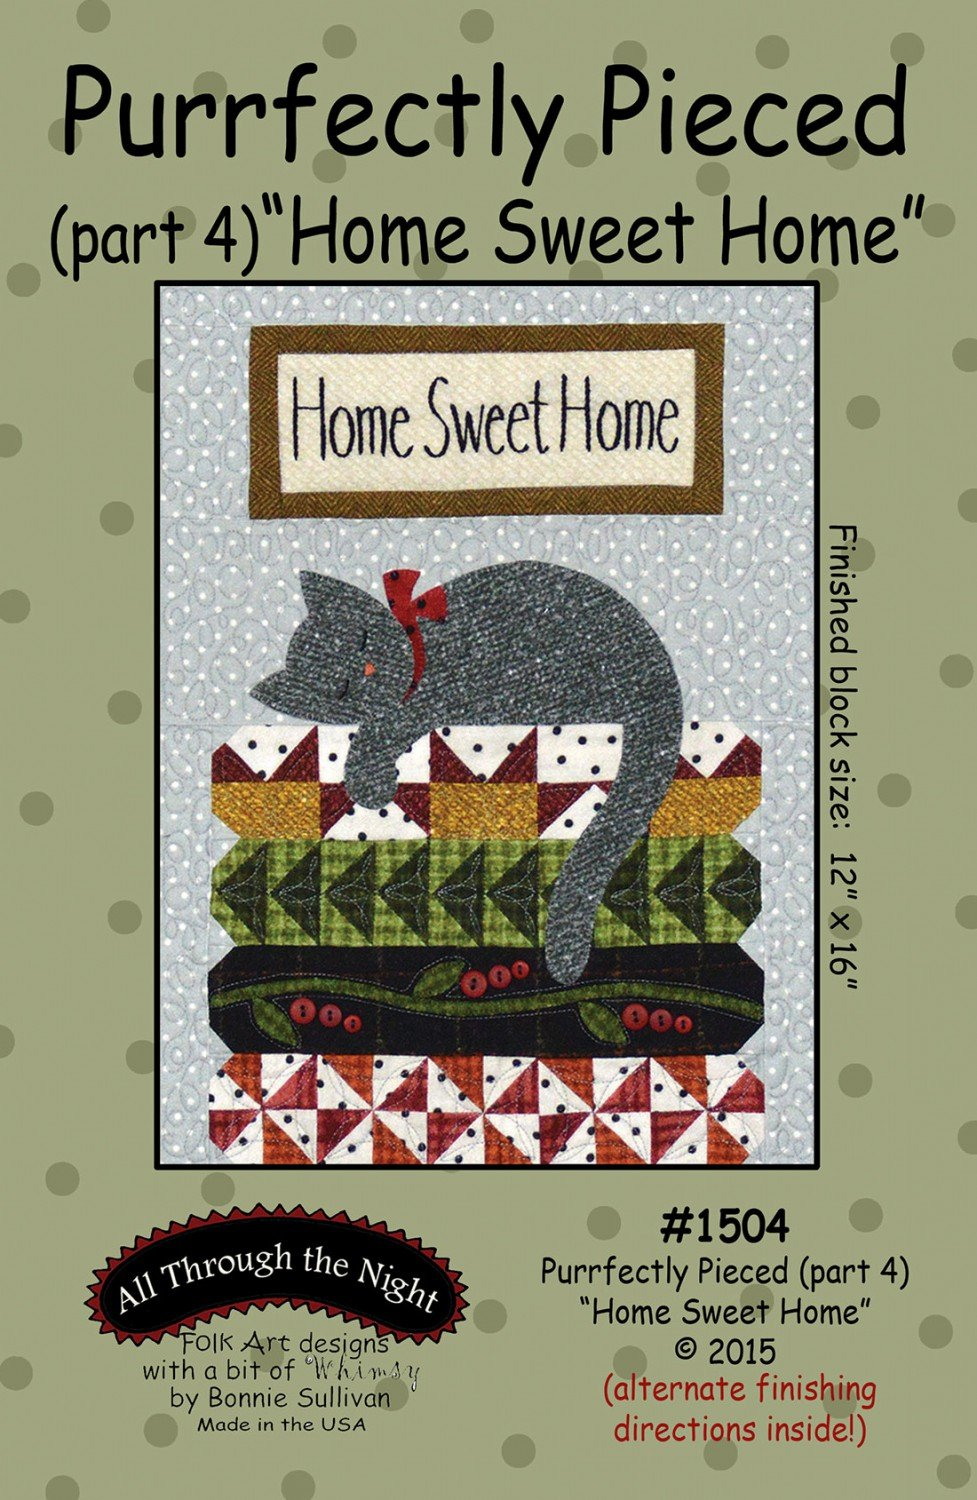 Purrfectly Pieced 4 Home Sweet Home